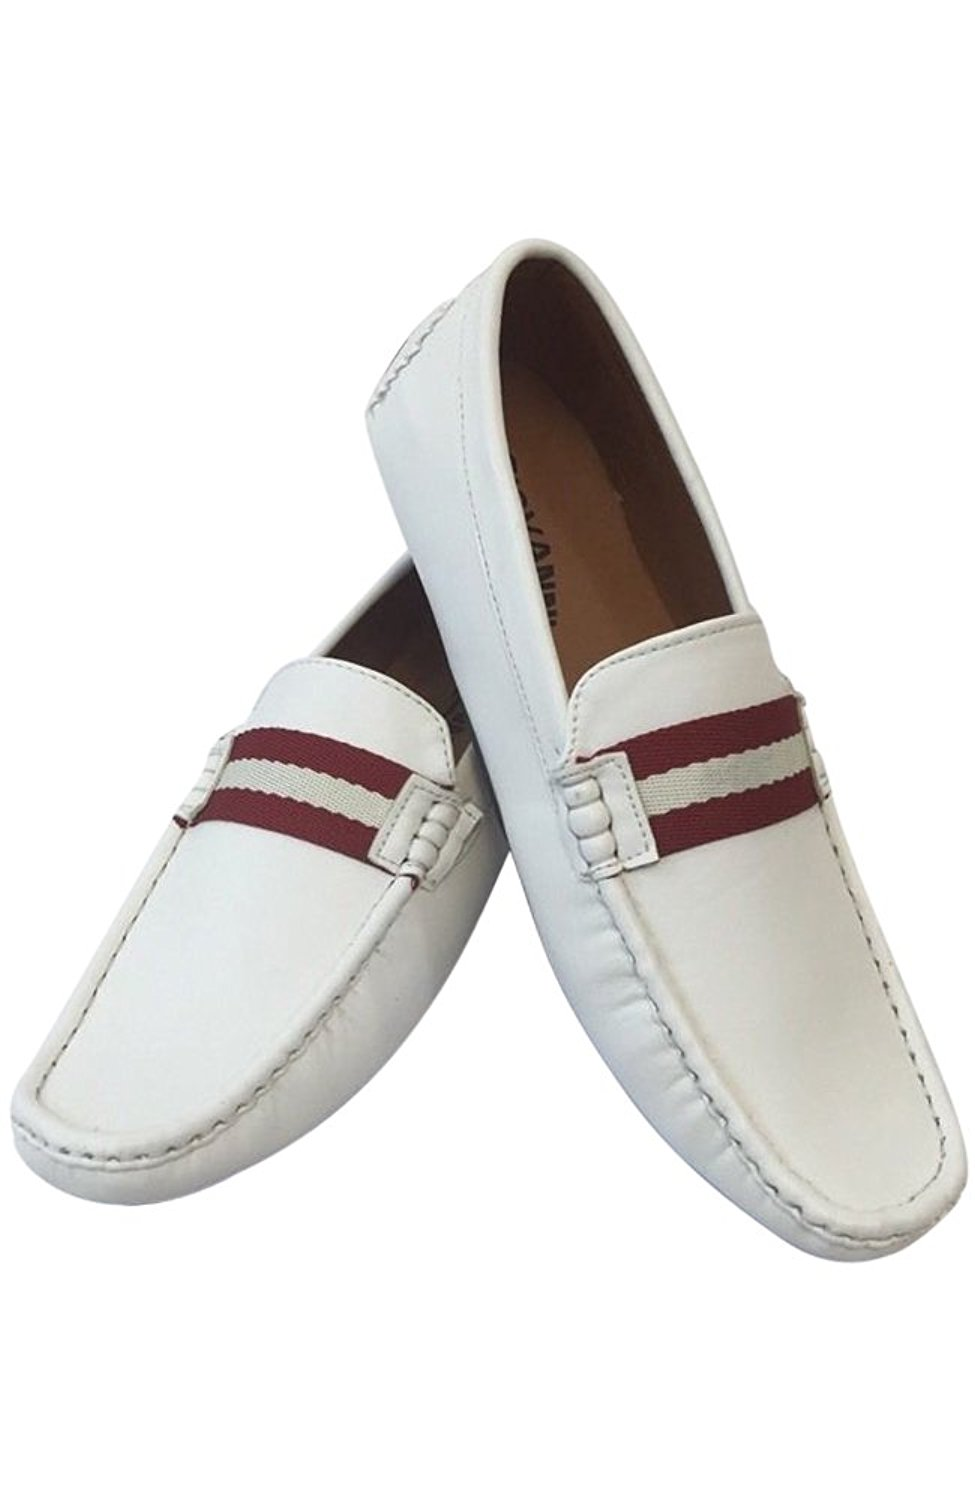 Mens Giovanni Loafer Dress Shoes Italian Style Slip On Solid White with White Stitching 9511